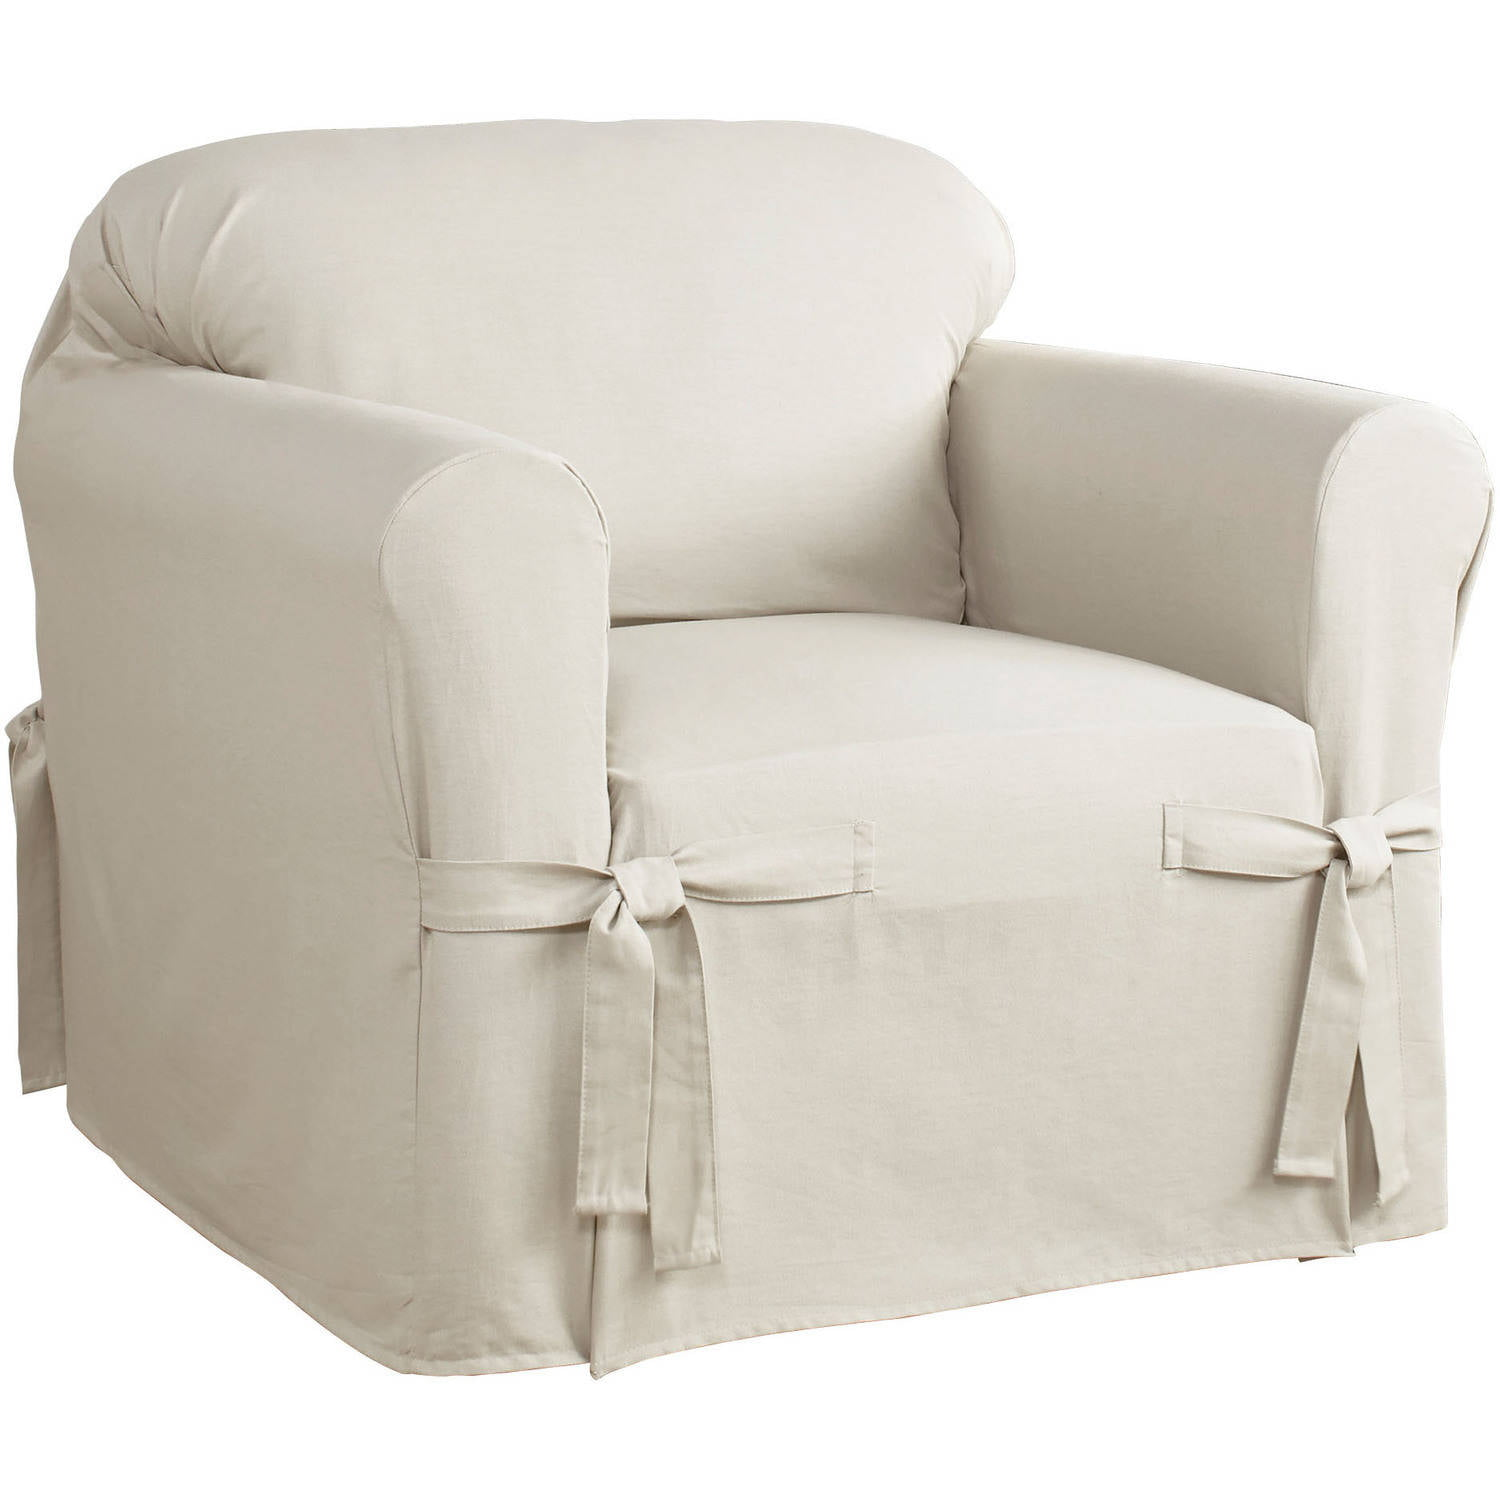 Merveilleux Serta Relaxed Fit Cotton Duck Furniture Slipcover, Chair 1 Piece Box  Cushion   Walmart.com